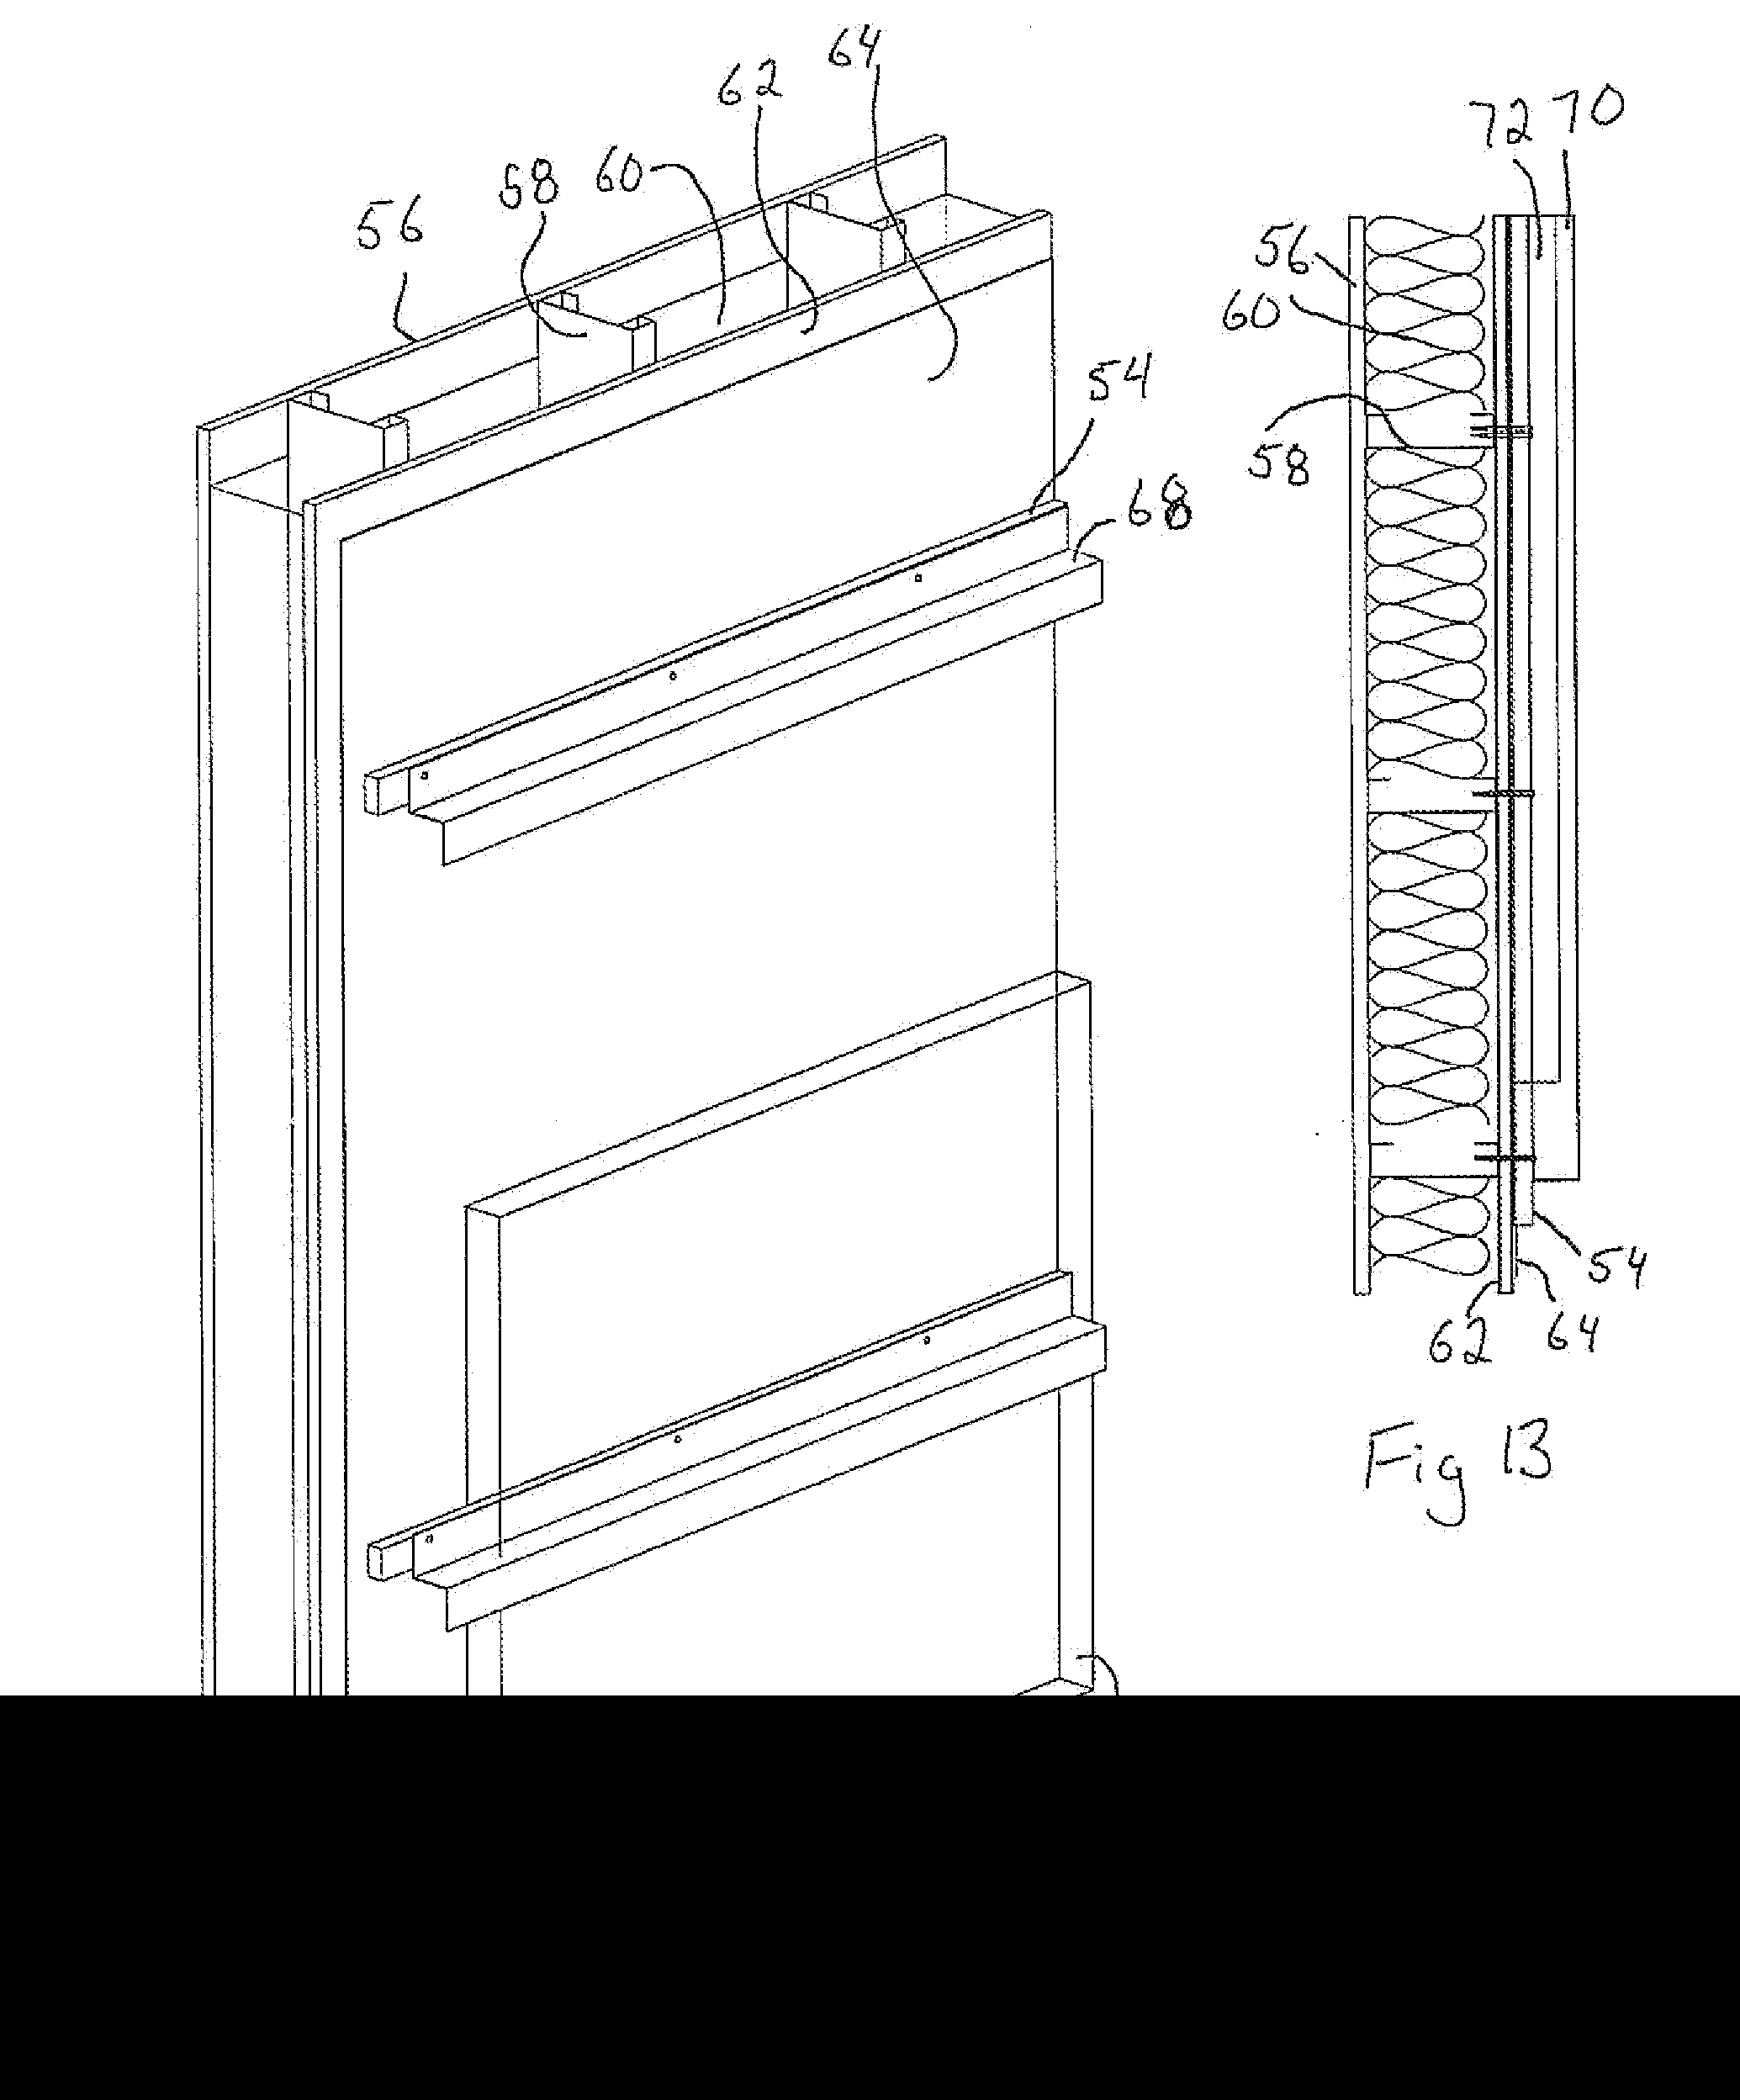 patent us20140325928 - thermal break wall systems and thermal adjustable clip